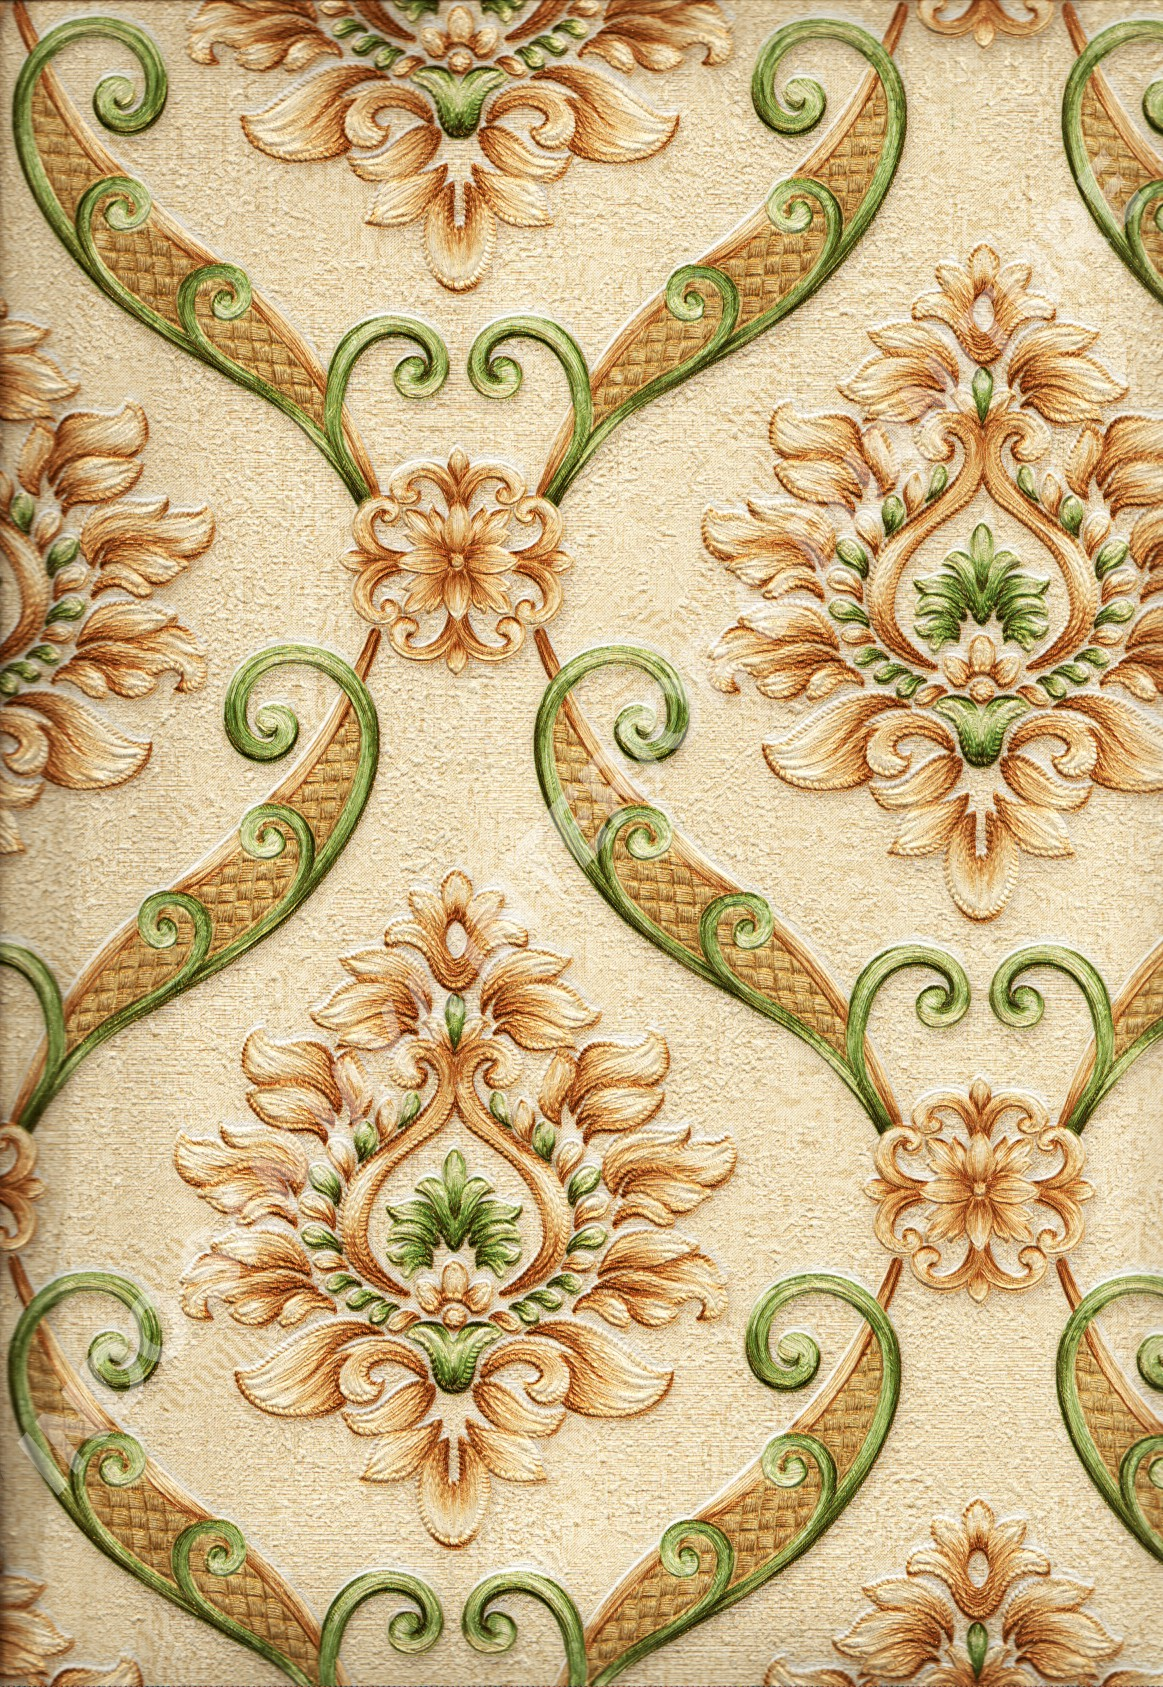 wallpaper   Wallpaper Klasik Batik (Damask) IS1822:IS1822 corak  warna